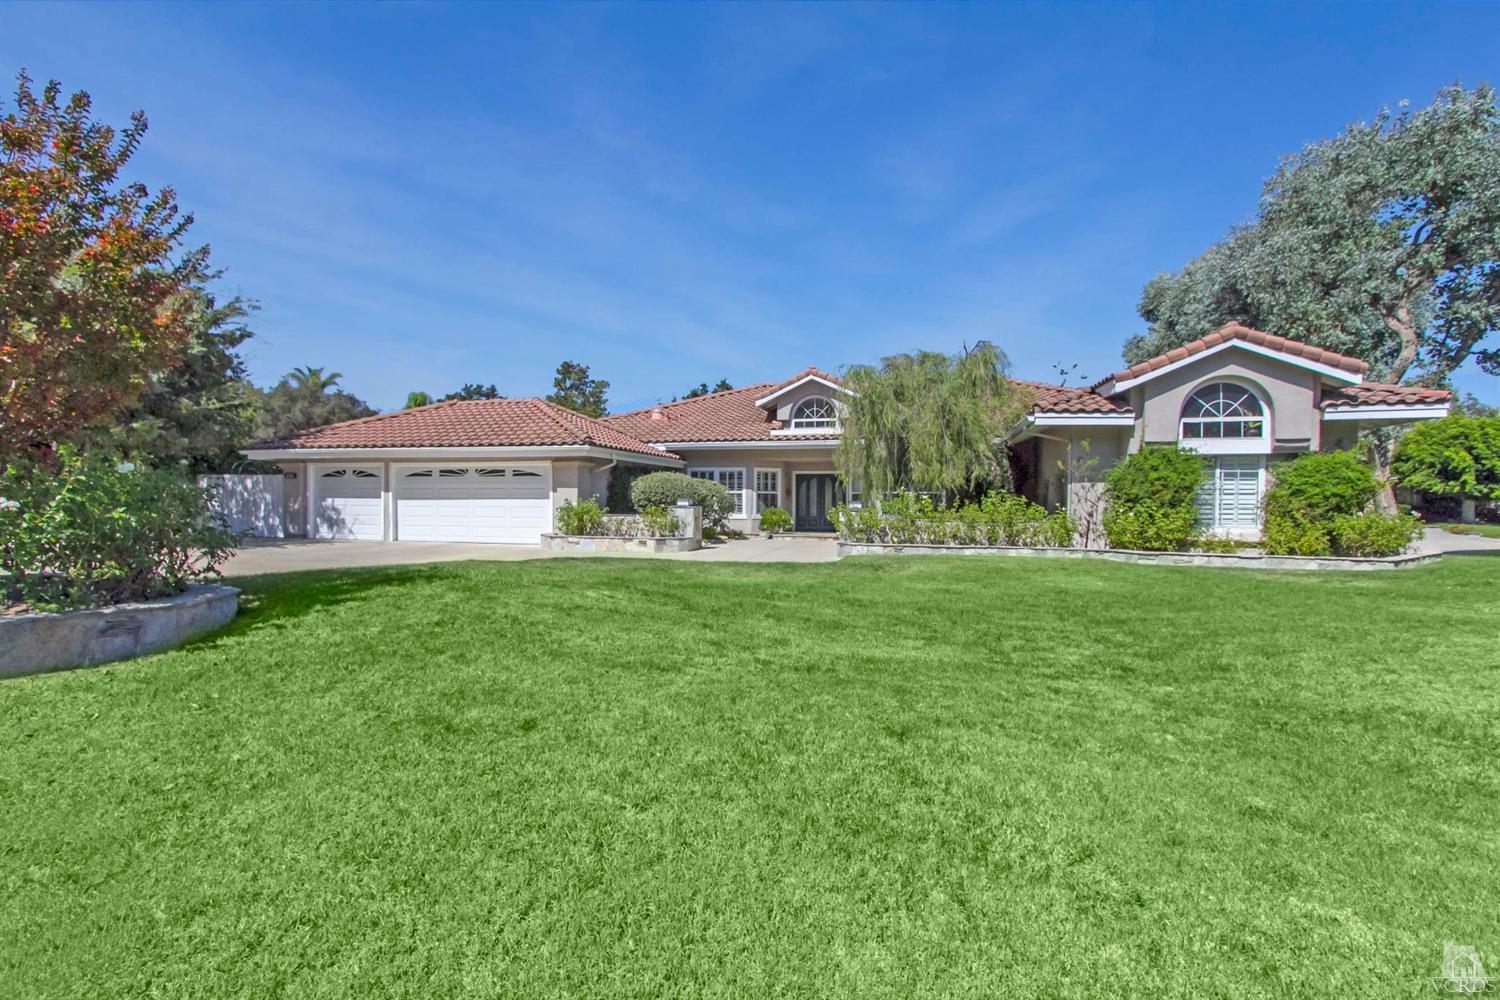 1211 Lynnmere Dr, Thousand Oaks, CA